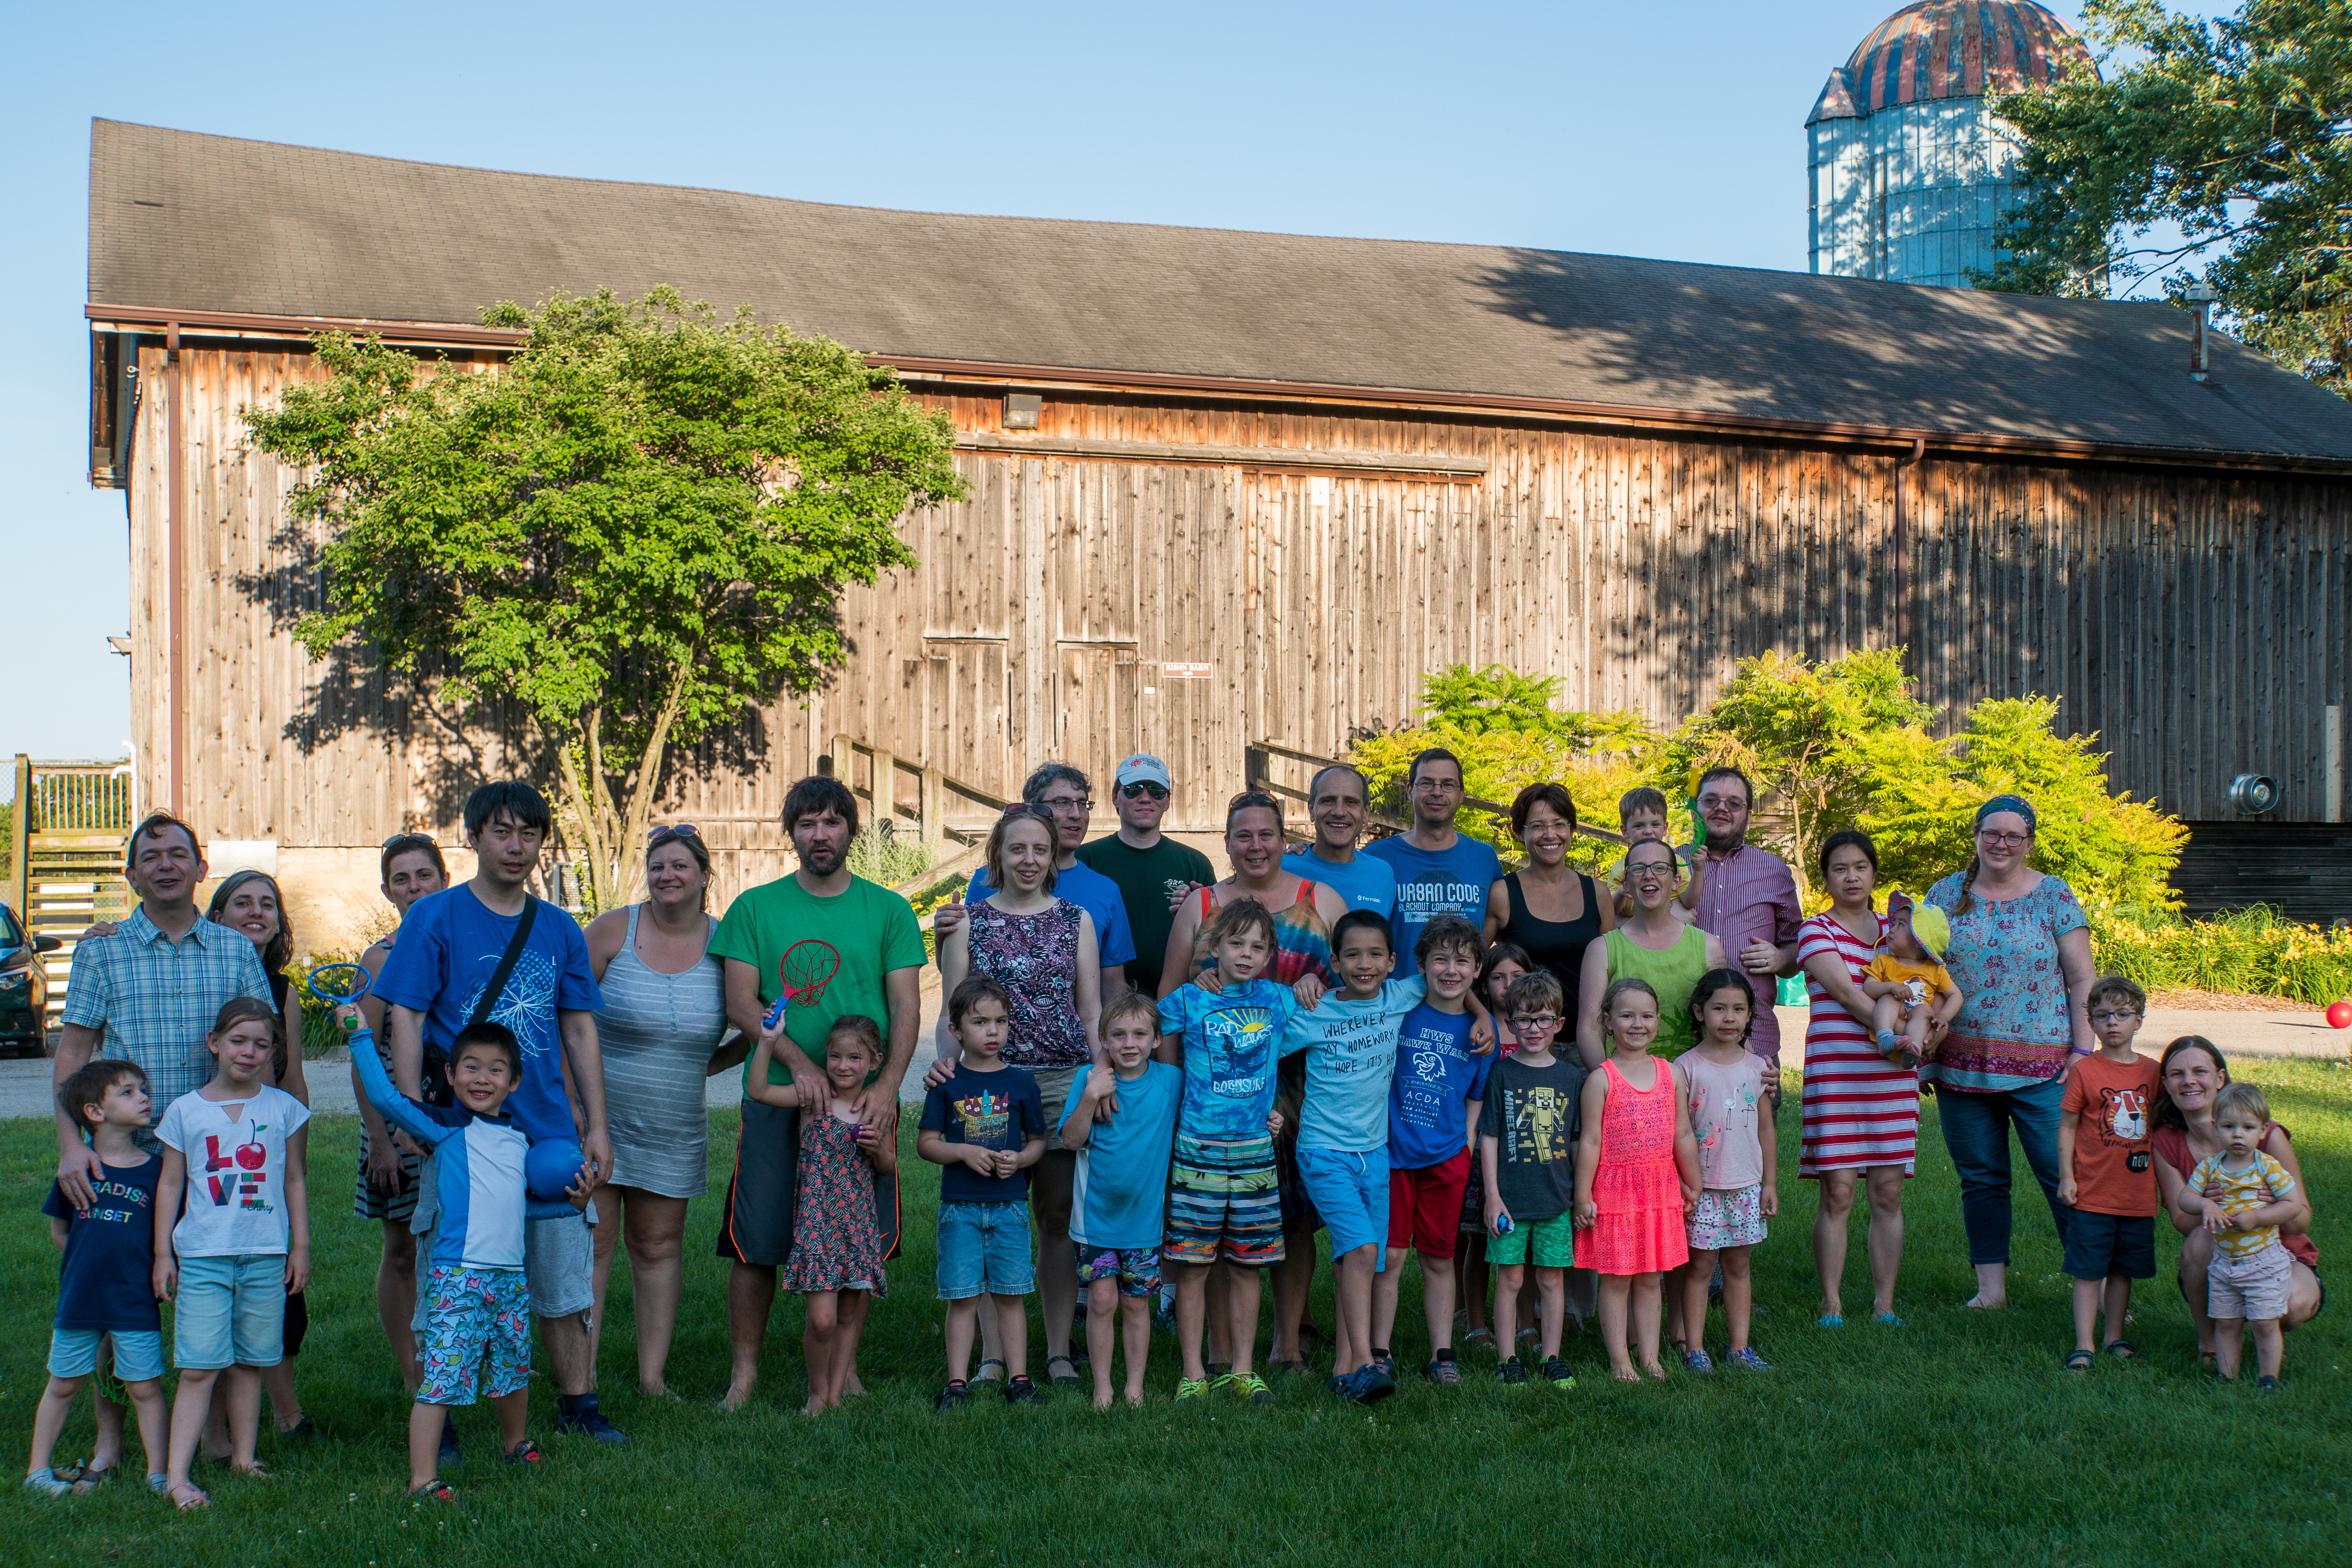 """Families get together for a potluck meal and outside fun after a discounted swim at the Fermilab pool as part of Fermilab's playgroup on a recent Wednesday. To find out more, visit <a href=""""https://get-connected.fnal.gov/playgroup/"""">https://get-connected.fnal.gov/playgroup/</a>. people, lab life Photo: Marguerite Tonjes"""